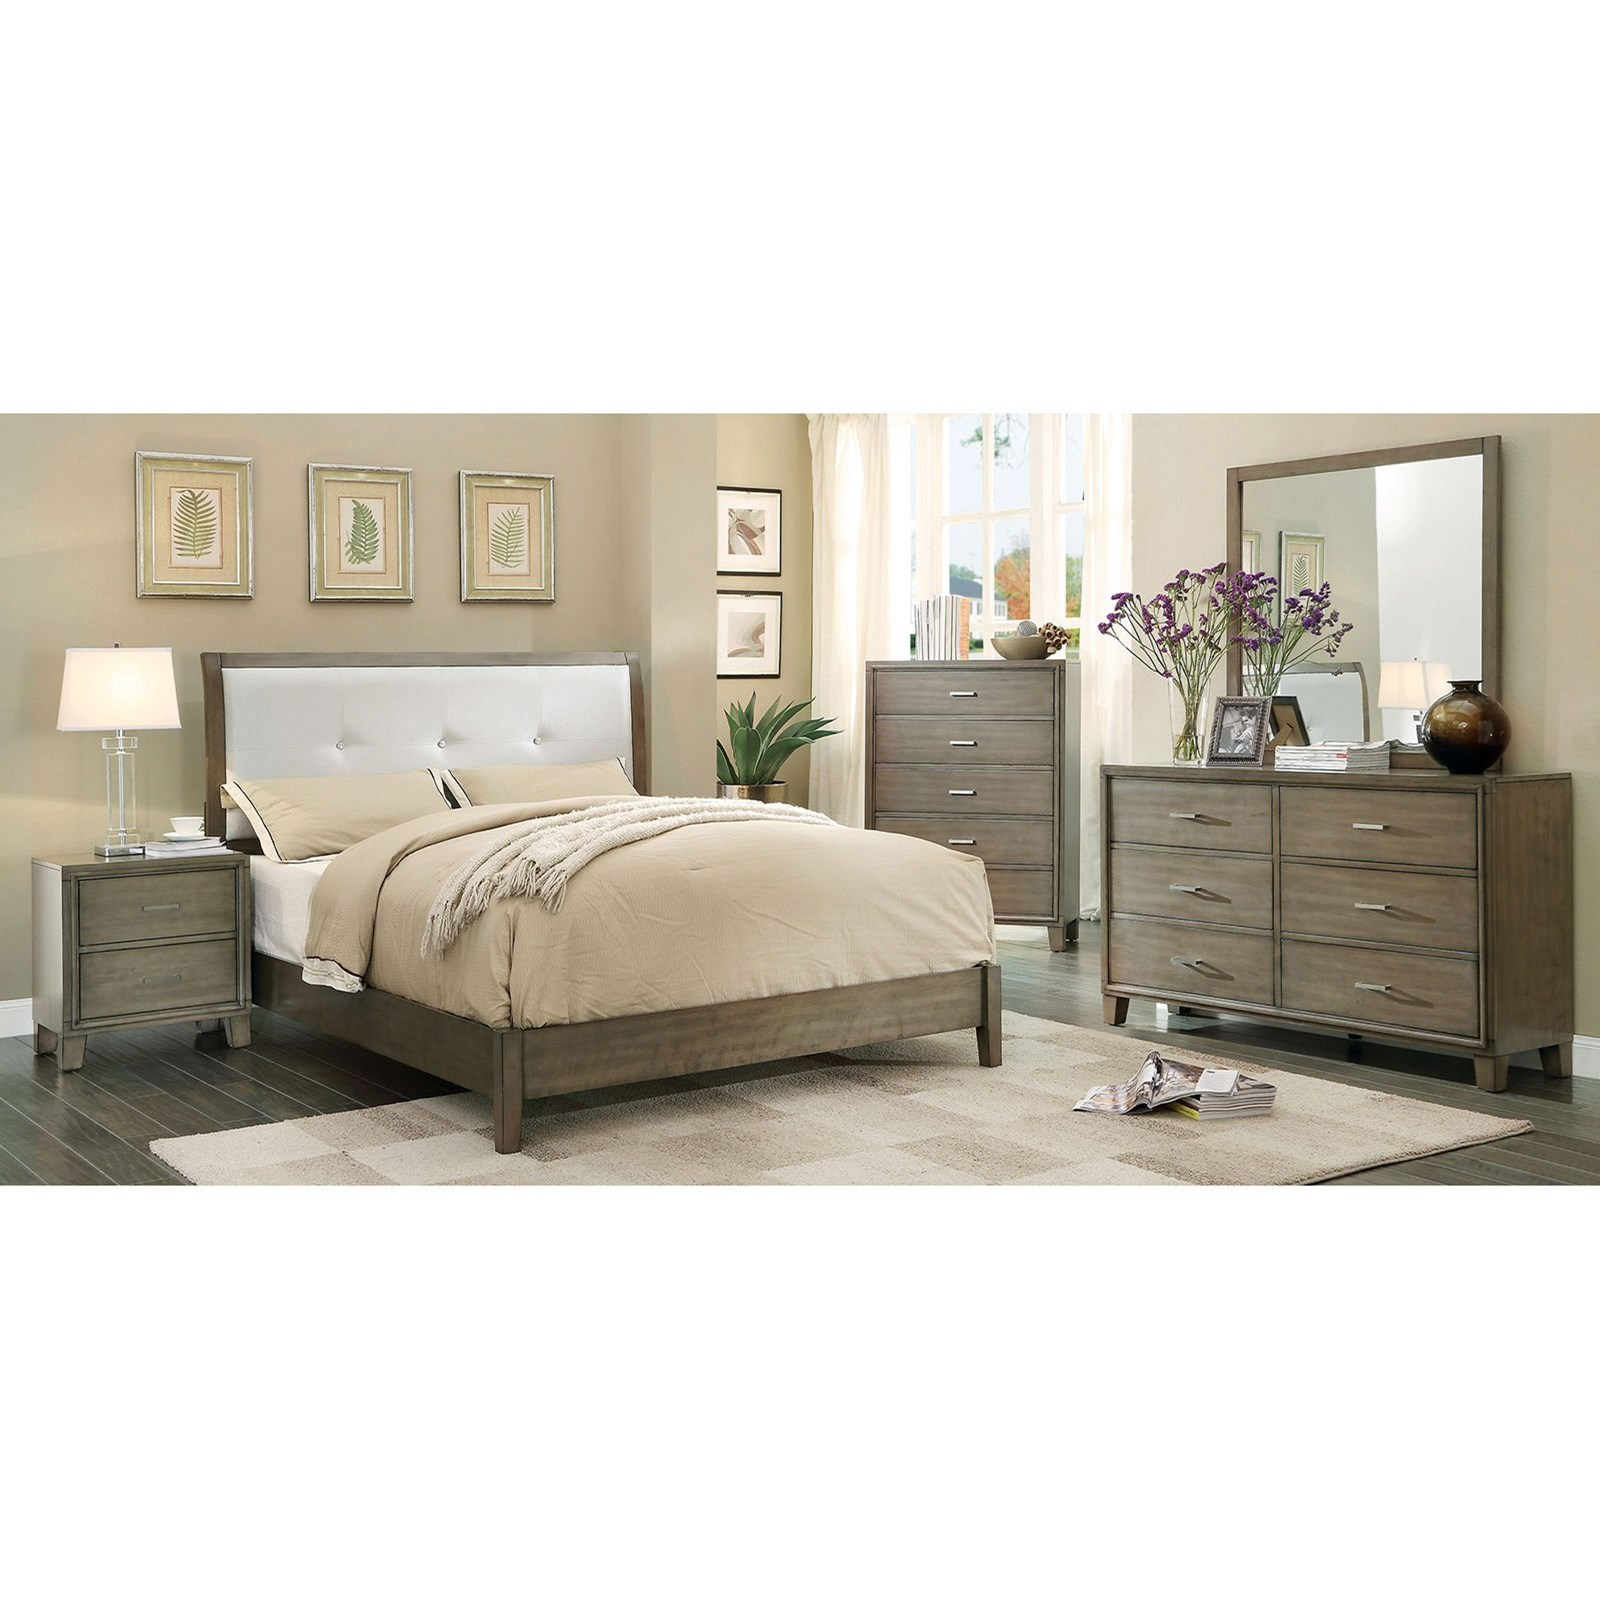 Enrico I Queen Bedroom Group at Household Furniture